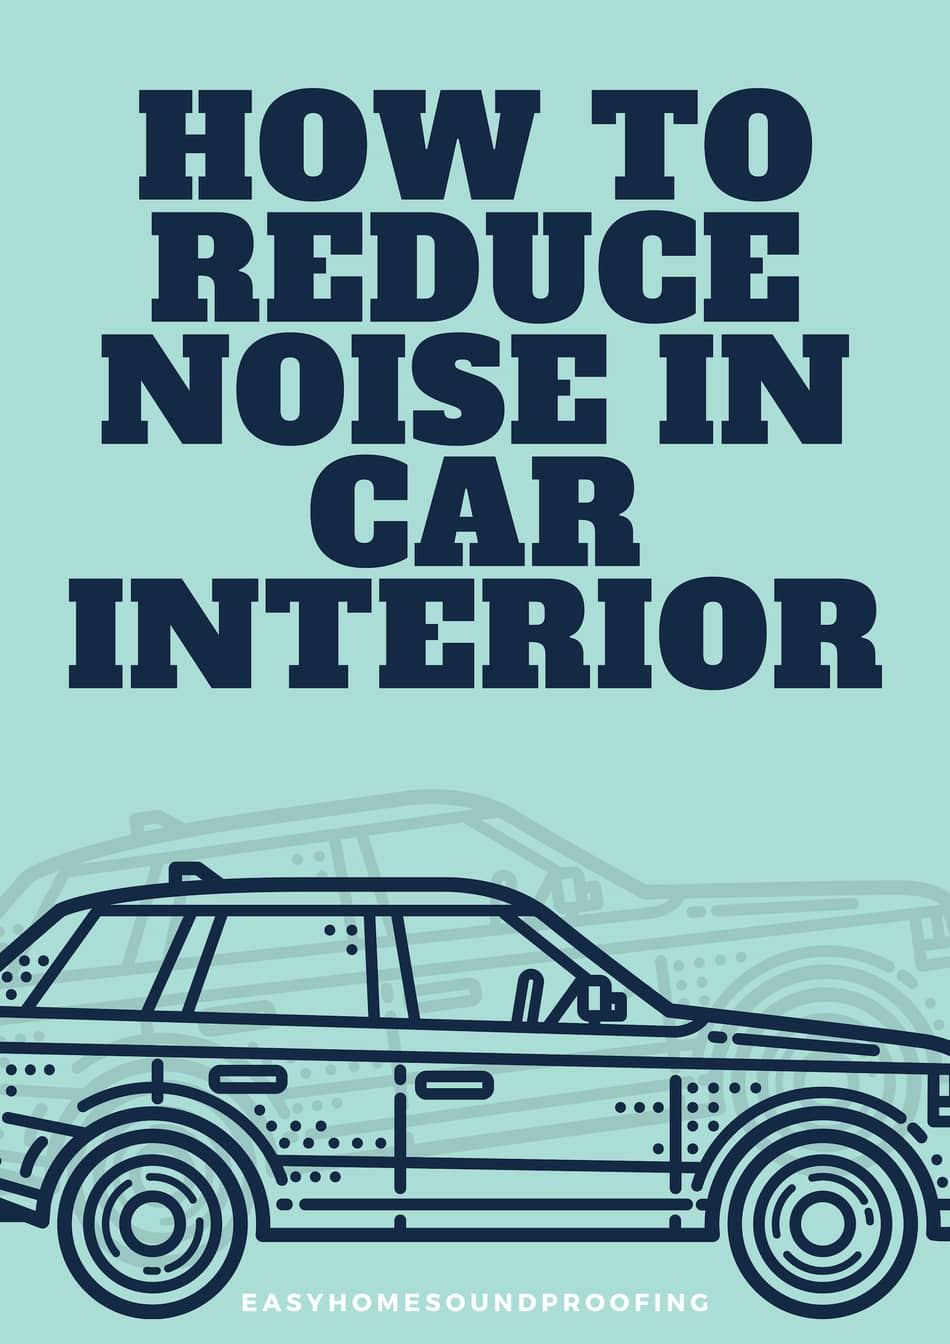 14 ways to reduce noise in car interior